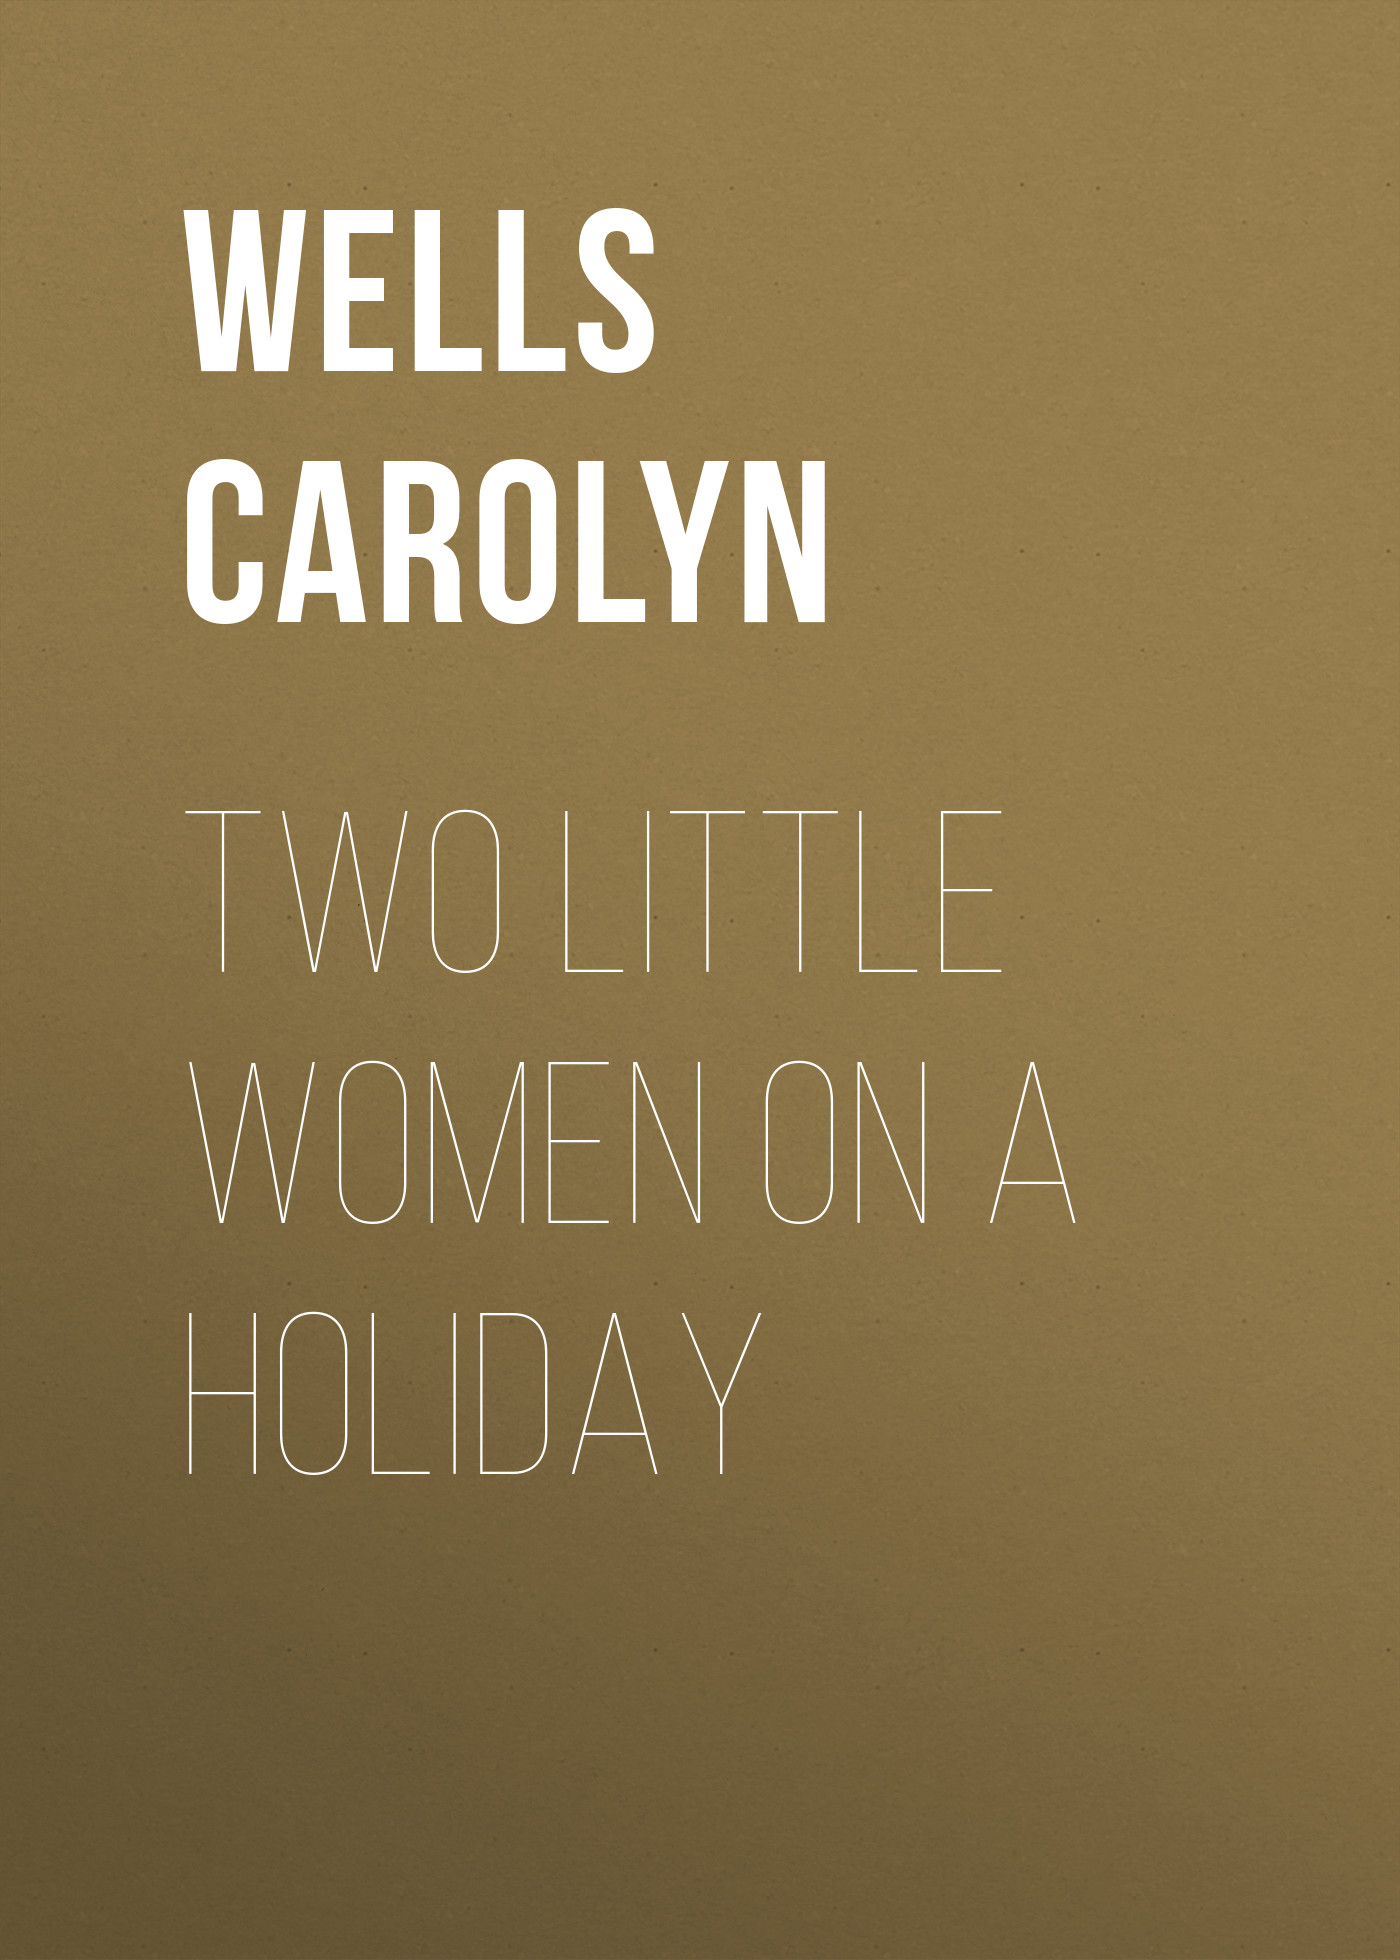 лучшая цена Wells Carolyn Two Little Women on a Holiday